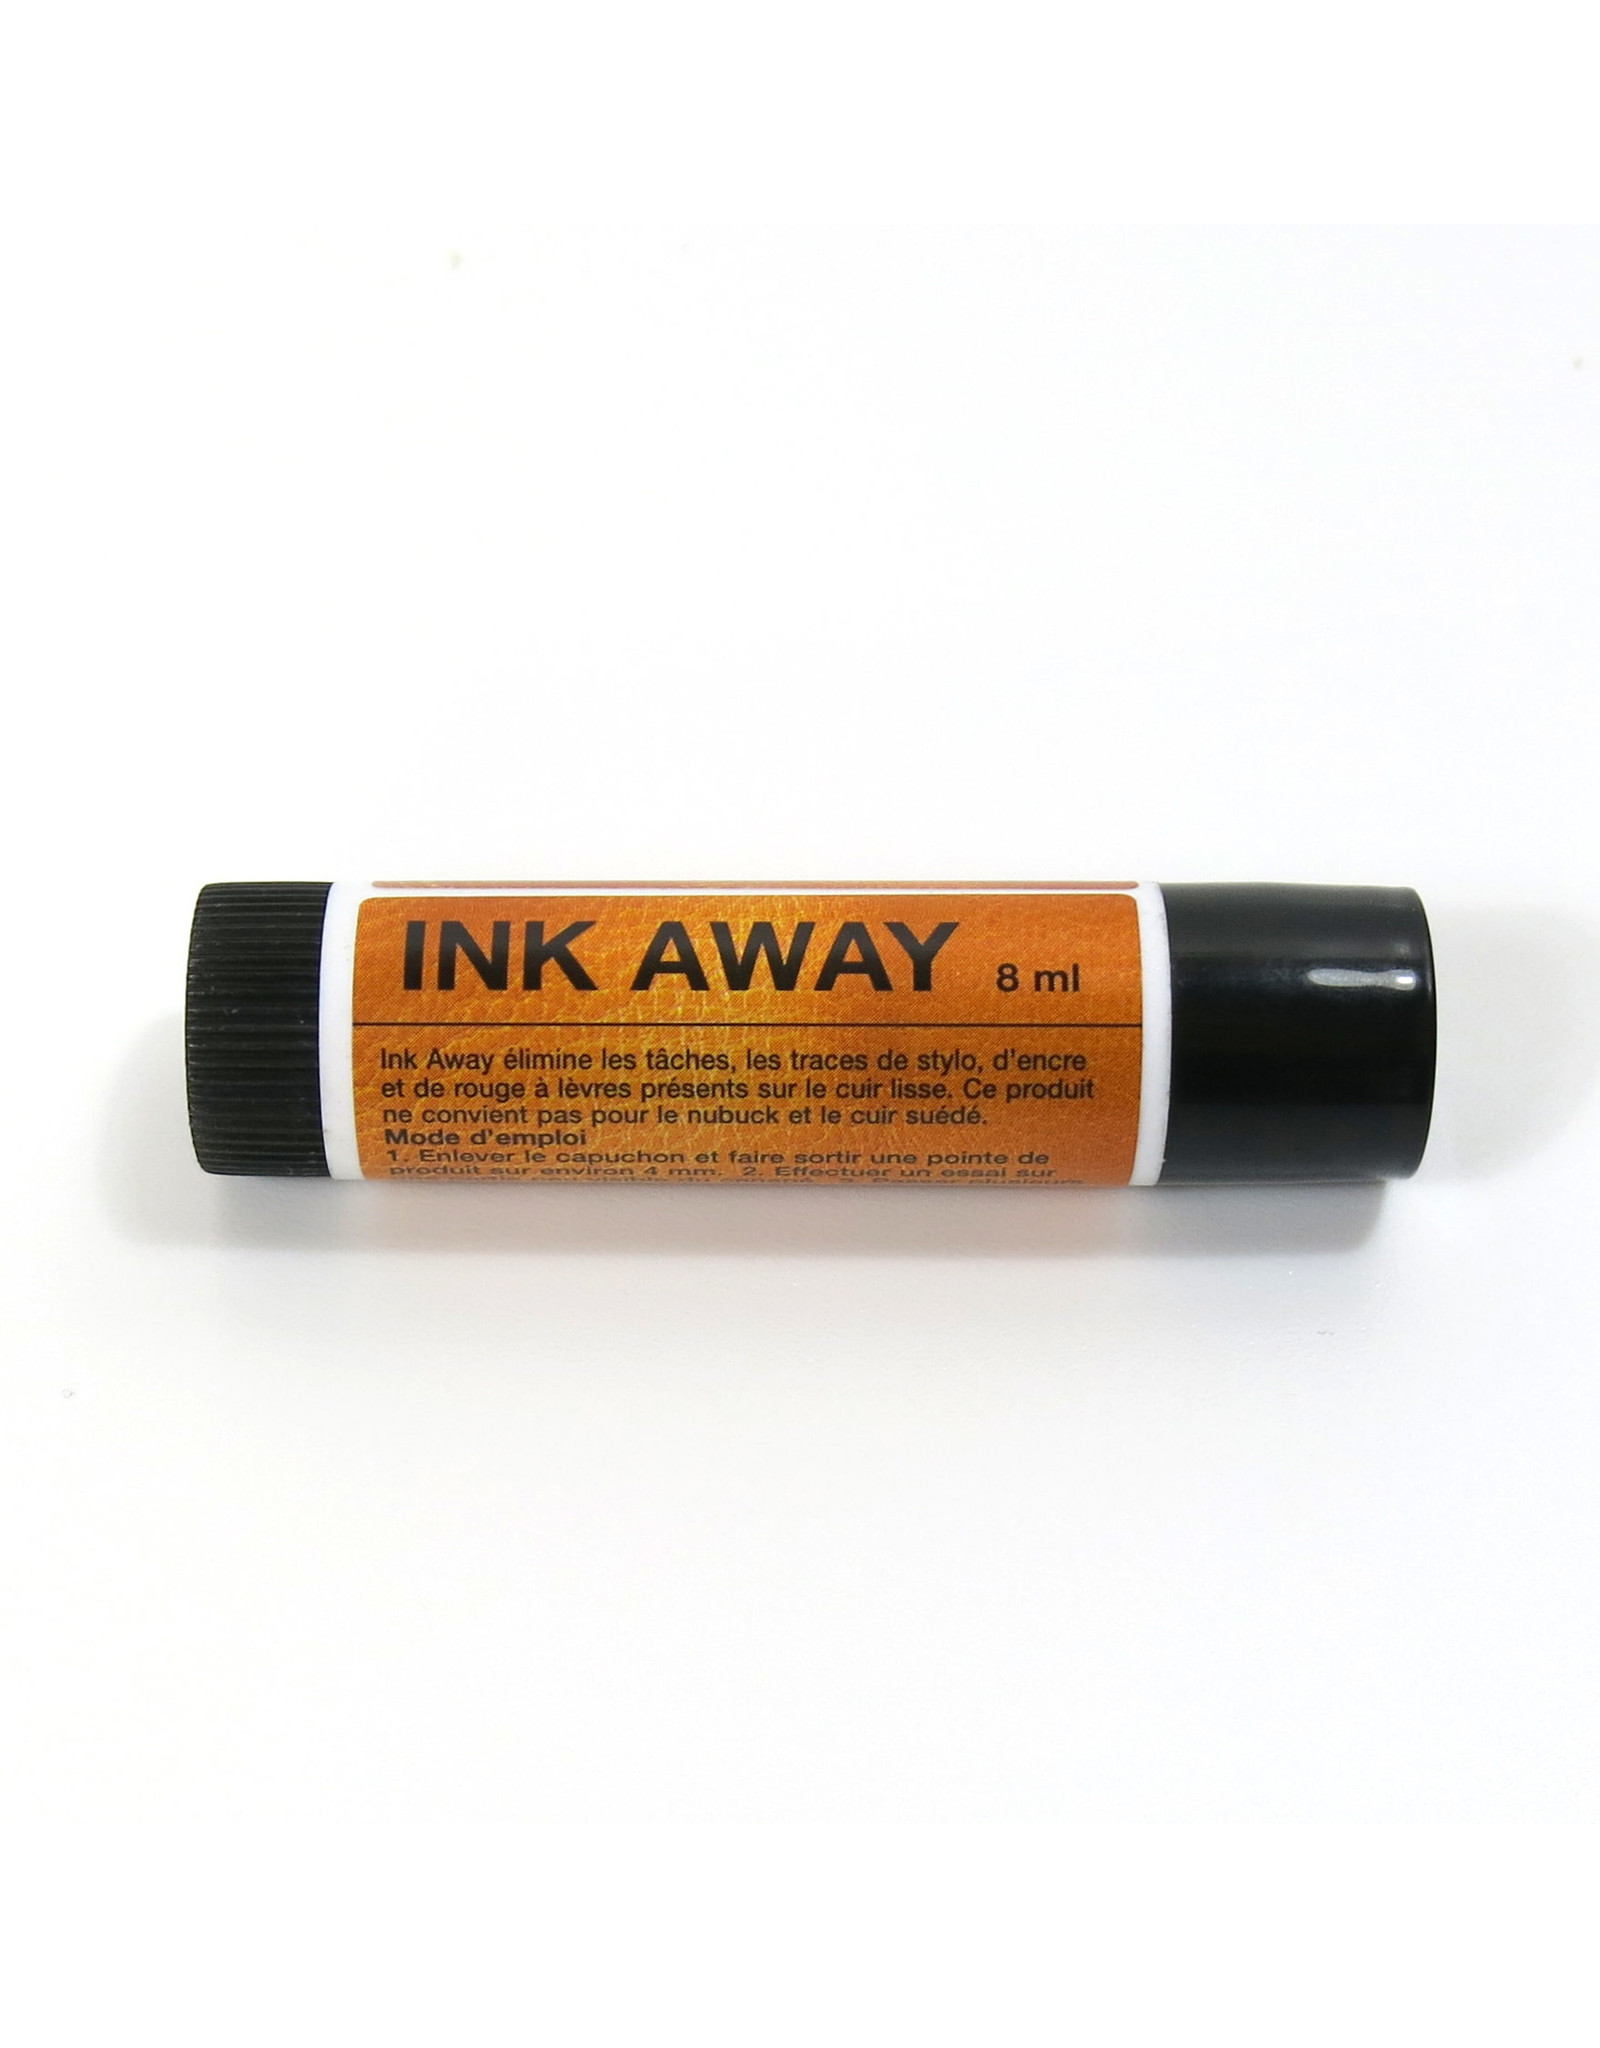 Ink Away (stain remover)